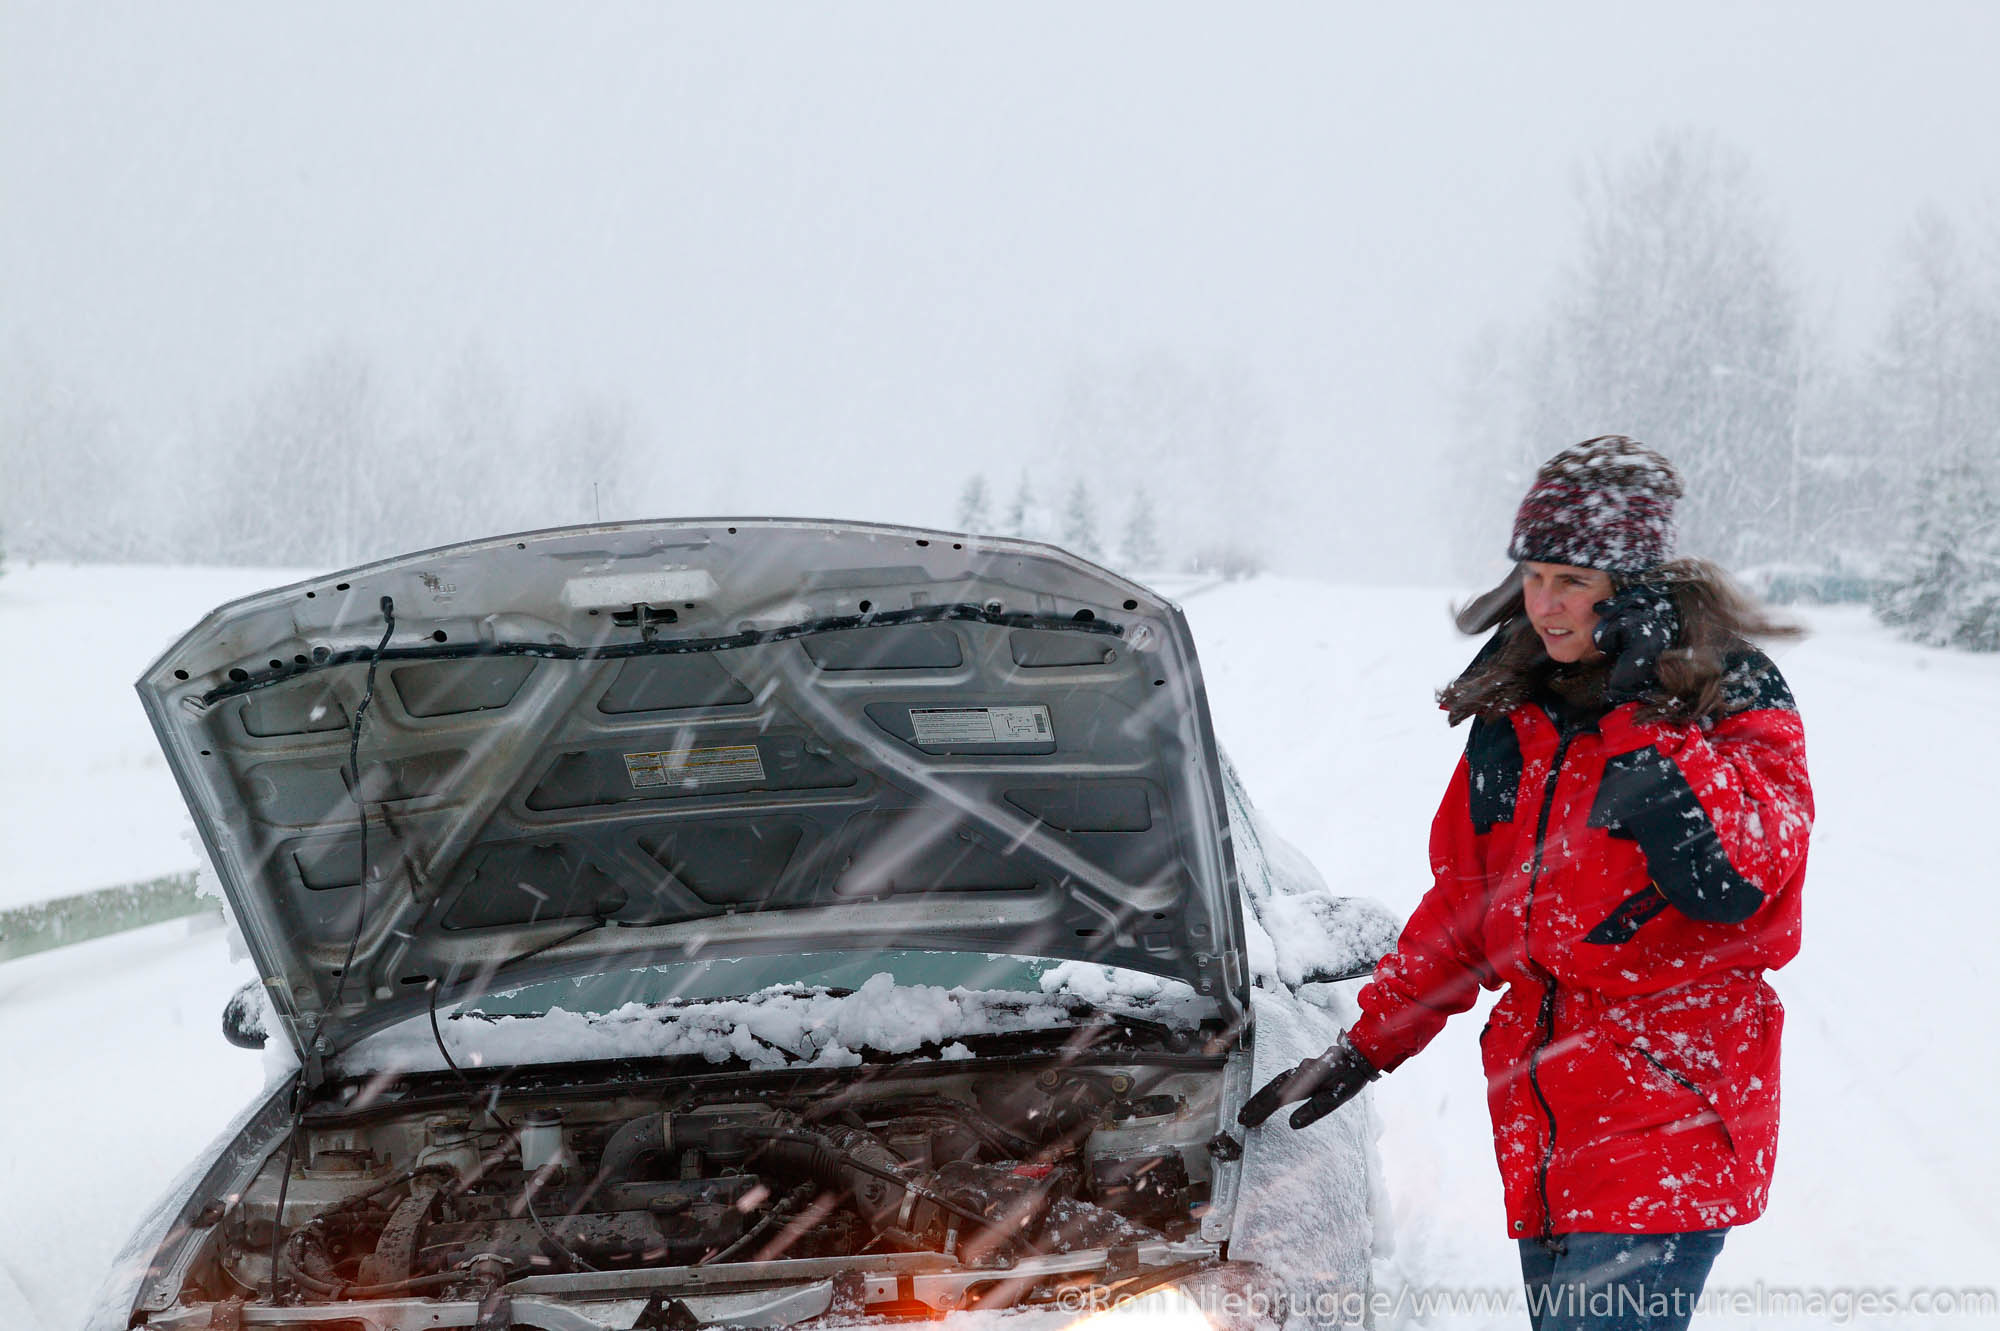 A female traveler with a disabled car, makes a call on her cell phone, during a winter snowstorm, Seward, Alaska.  (MR, PR)